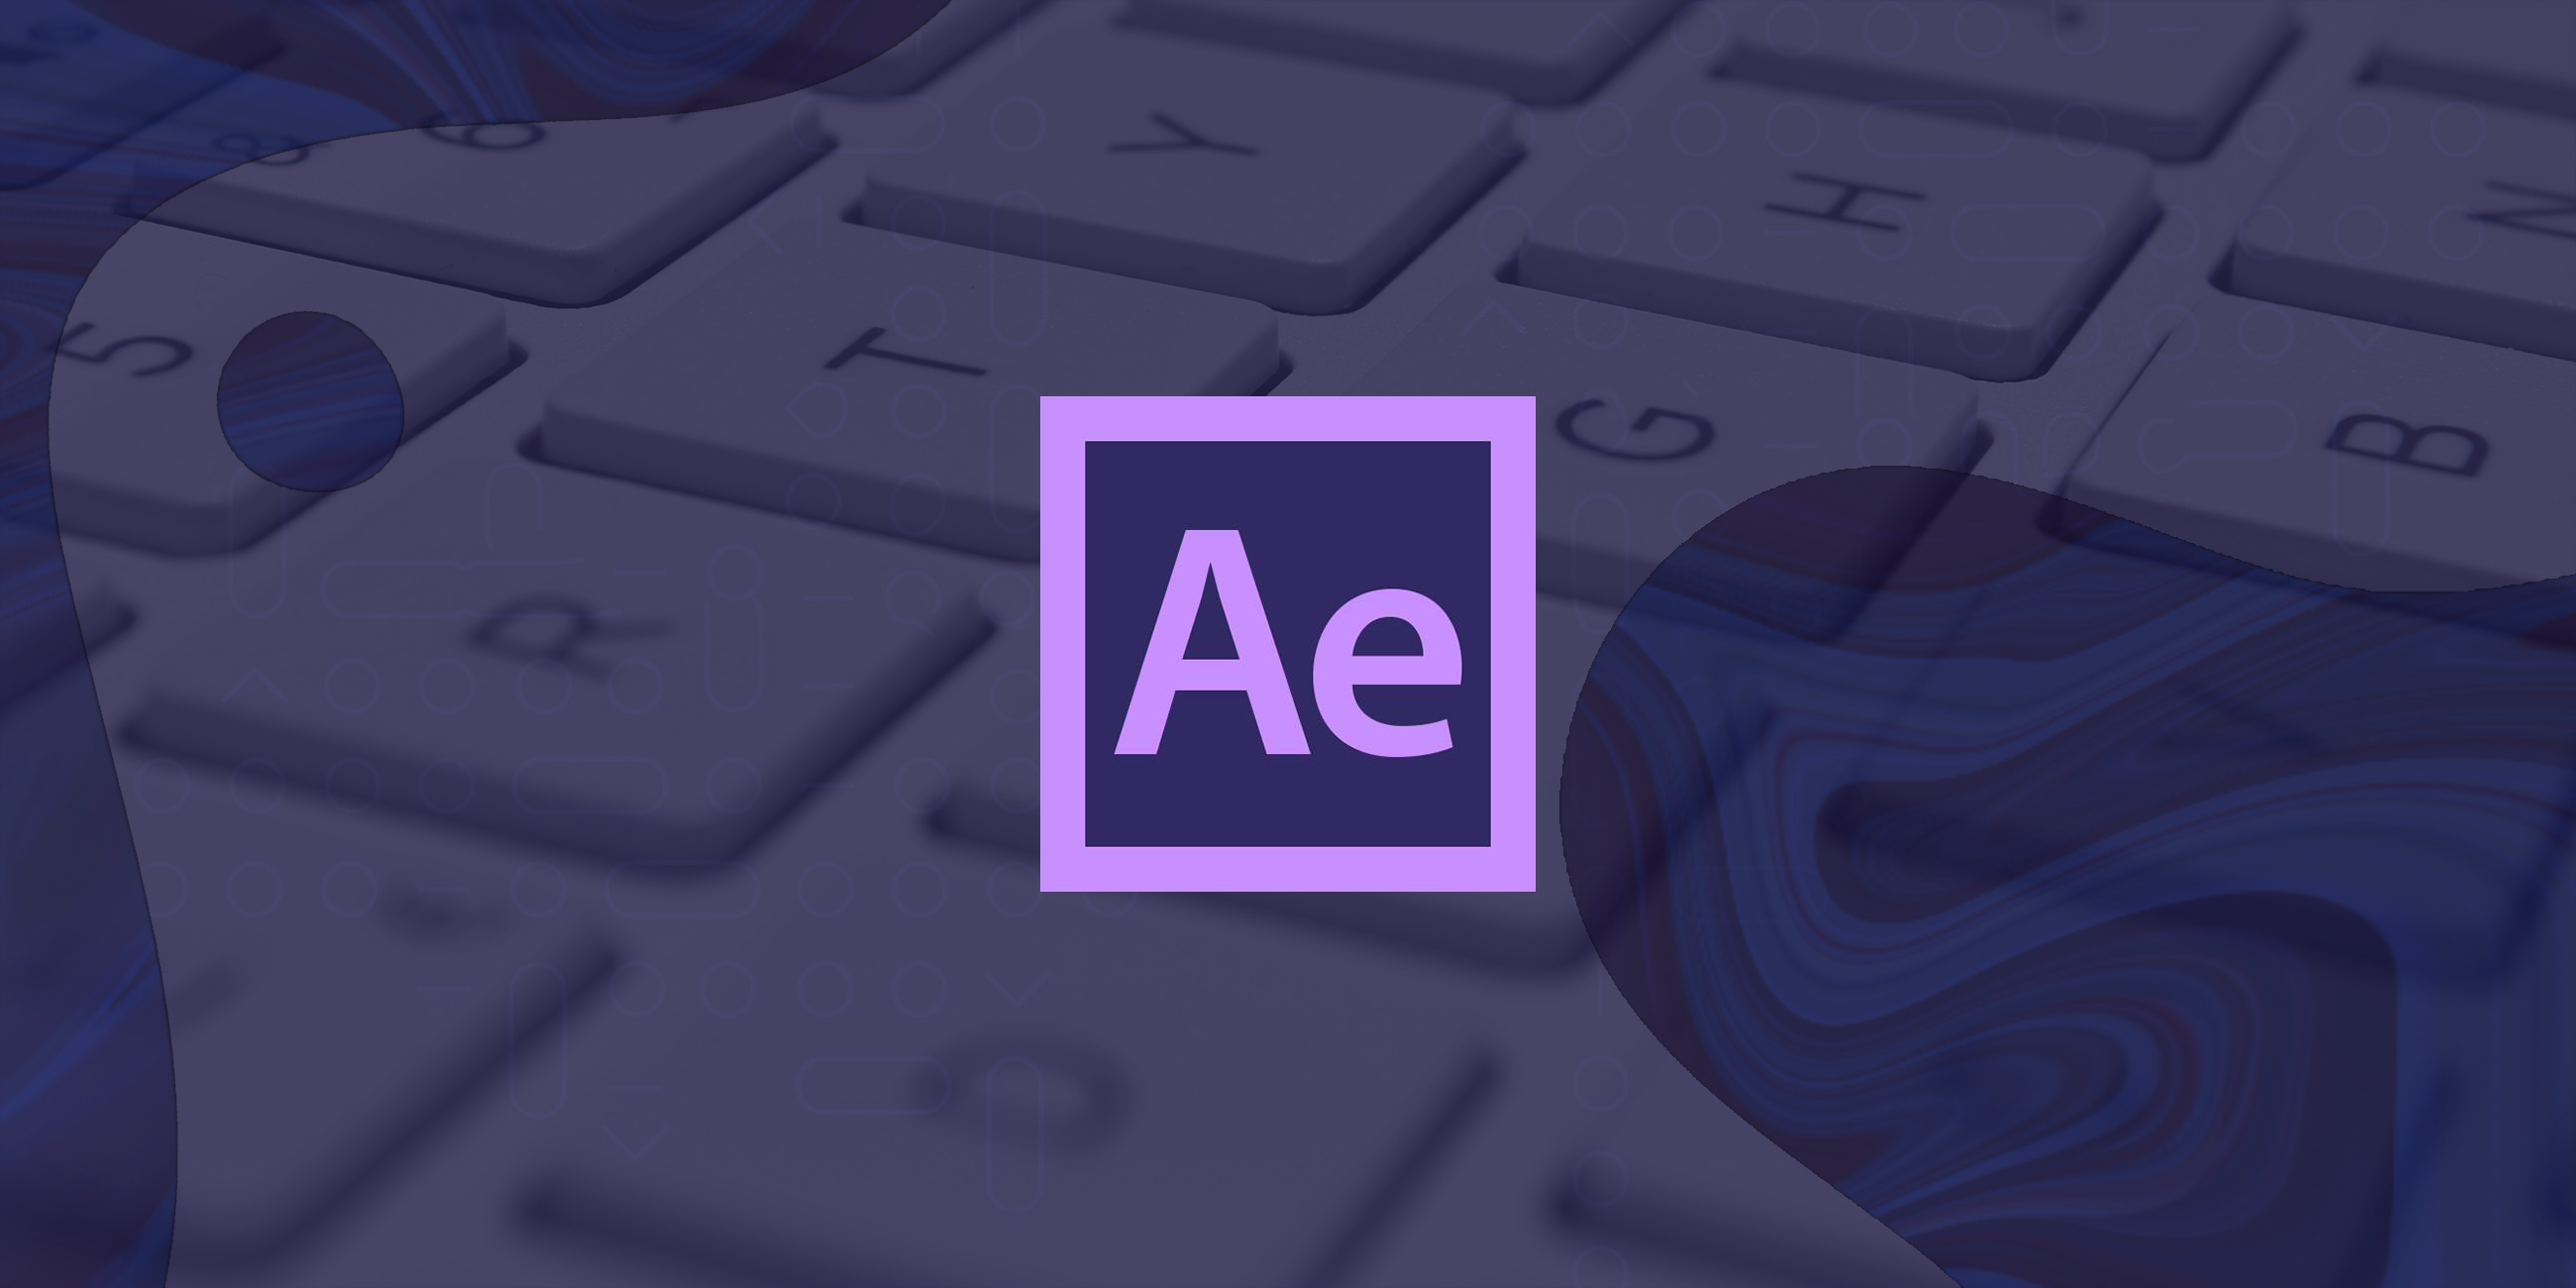 Over 30 After Effects Shortcuts You Should Be Using (But Probably Aren't)